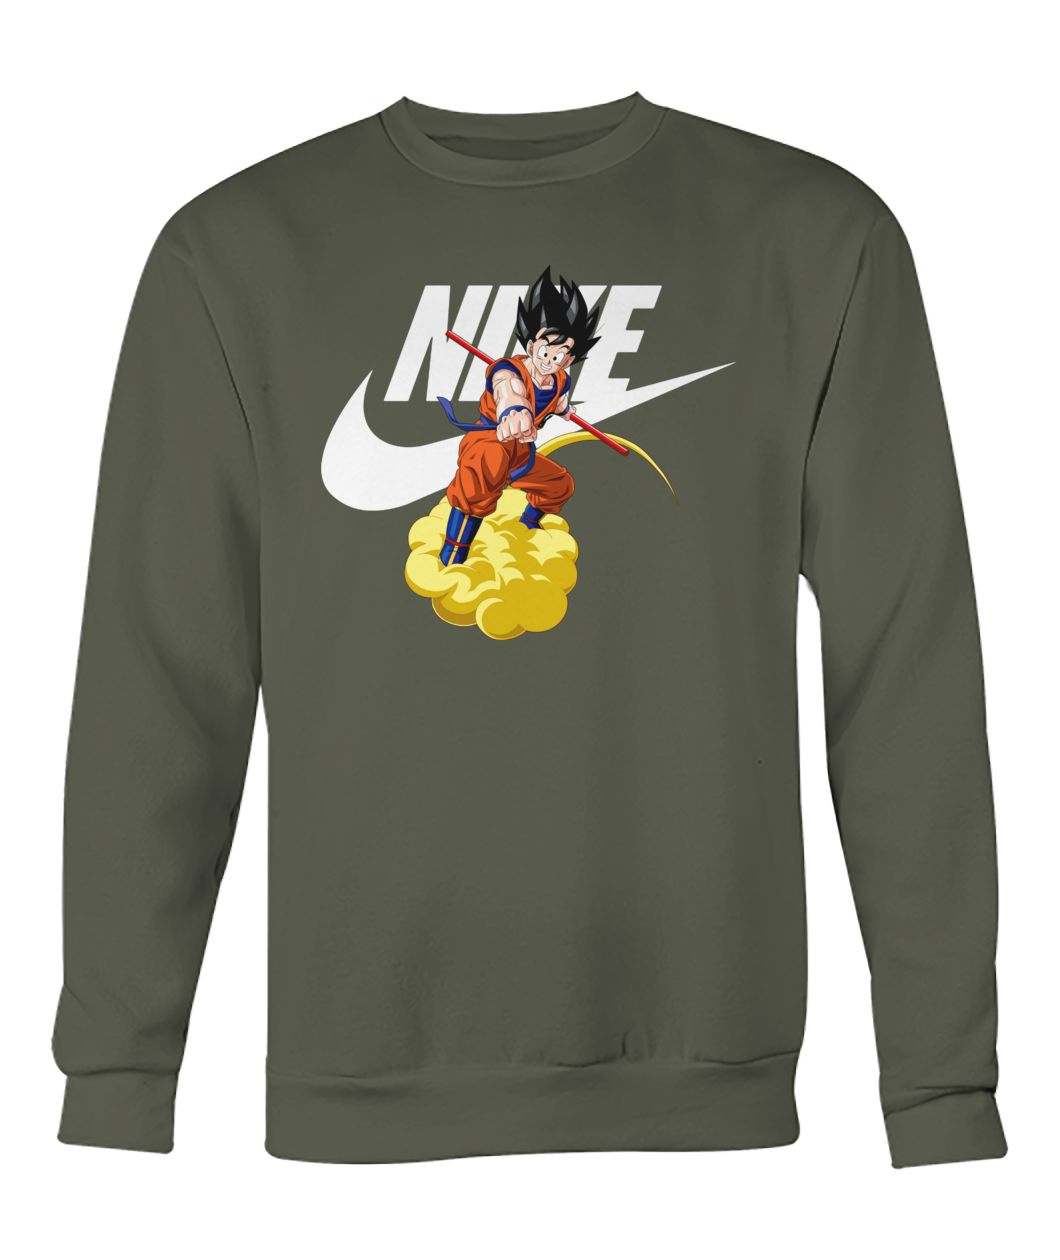 Dragon ball Songoku nike crew neck sweatshirt